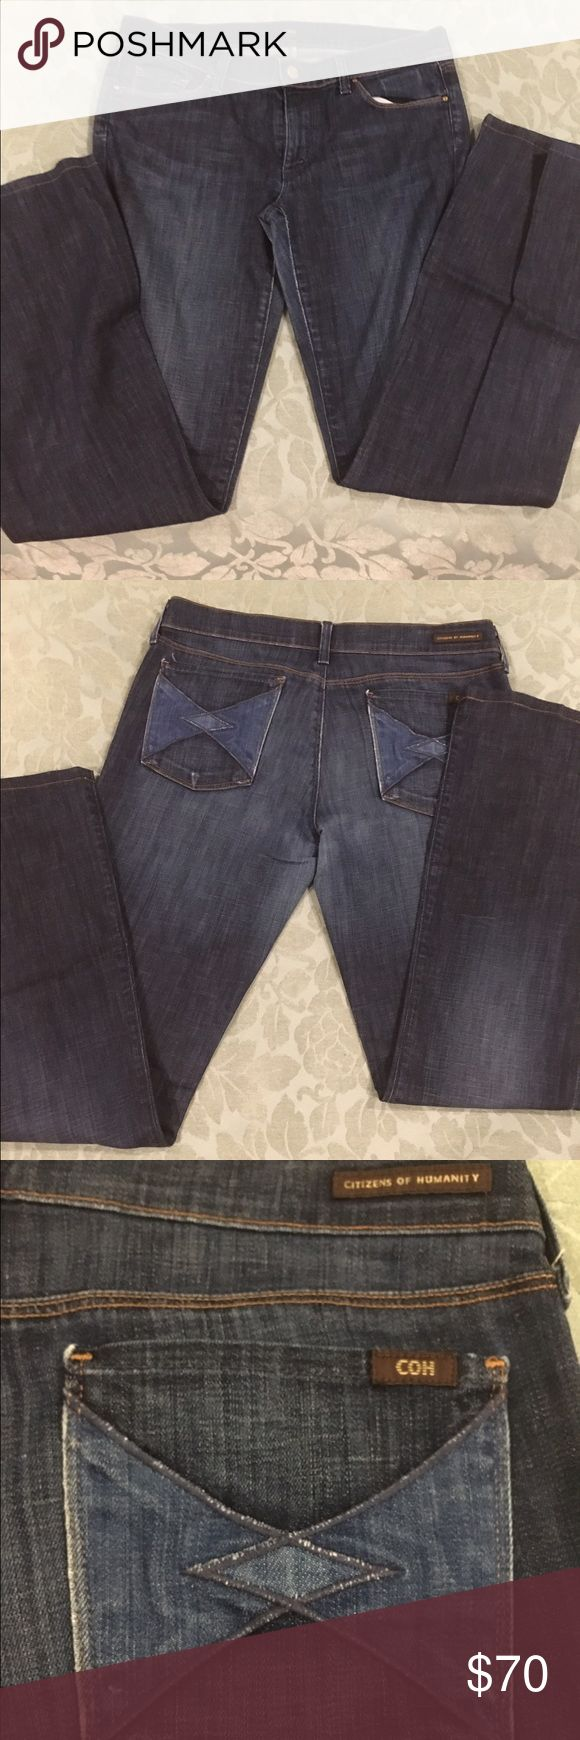 ❗️SALE❗️CITIZENS of HUMANITY JEANS-Worn 2times!! ❗️SALE-HUGE SAVINGS--COH JEANS--Low waist Flare, Style-INGRID-PERFECT condition-LIKE NEW--Paid $184.00 at a Boutique in Manhattan--only wore 2 times💥❗️❗️❗️ Citizens of Humanity Jeans Flare & Wide Leg